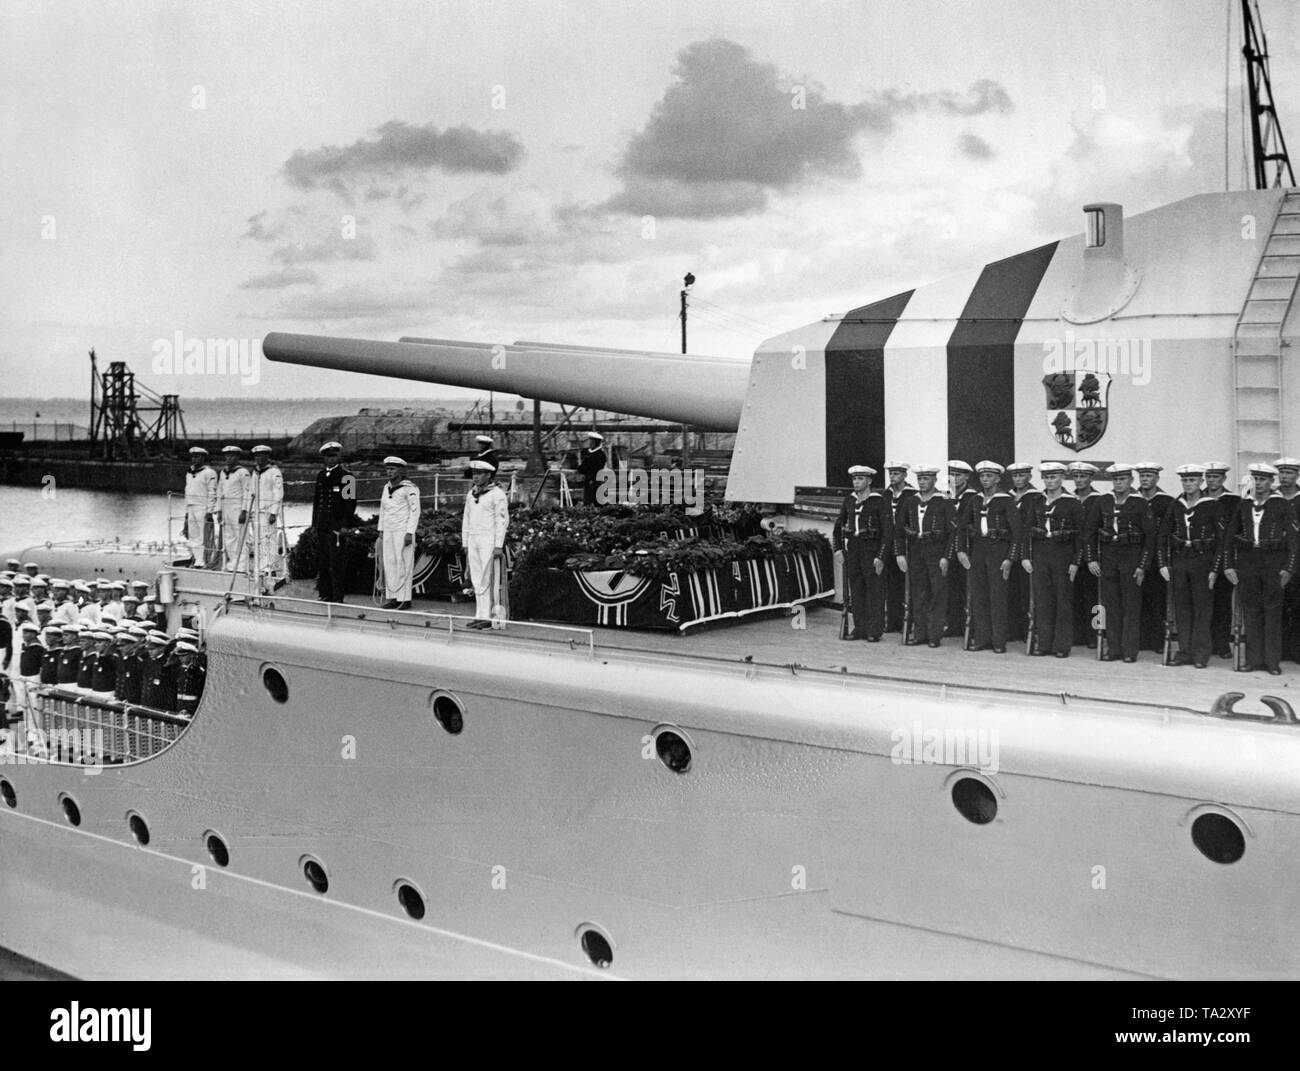 Photo of the upper deck of the heavy cruiser 'Deutschland' with the coffins of its crew members, who were killed in the bombing of republican aircrafts during the Spanish Civil War near Ibiza in June 1937, in the port of Wilhelmshaven on the North Sea. Beside the coffins adorned with the naval ensign and floral wreaths, the garrison has lined up in dress uniforms. Behind, there is the turret with three gun barrels (caliber 28cm). In the background, the harbor installations. - Stock Image